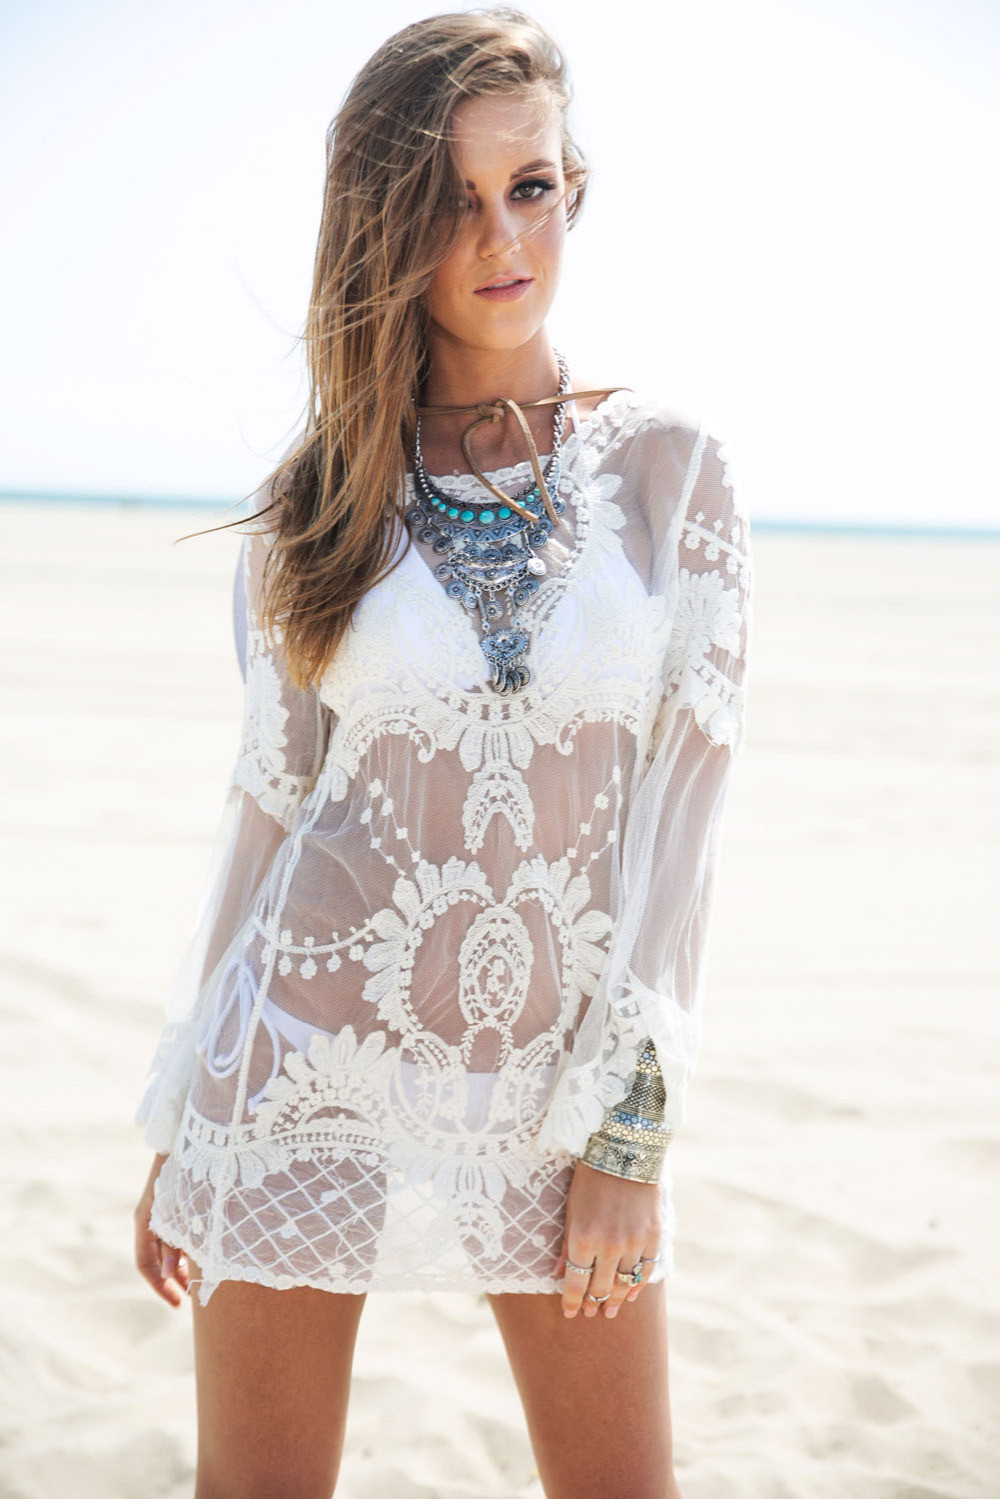 White Crochet Cover Up Elegant Beach Cover Up 2015 New Women Bathing Suit Cover Up Y Of Unique 42 Pictures White Crochet Cover Up